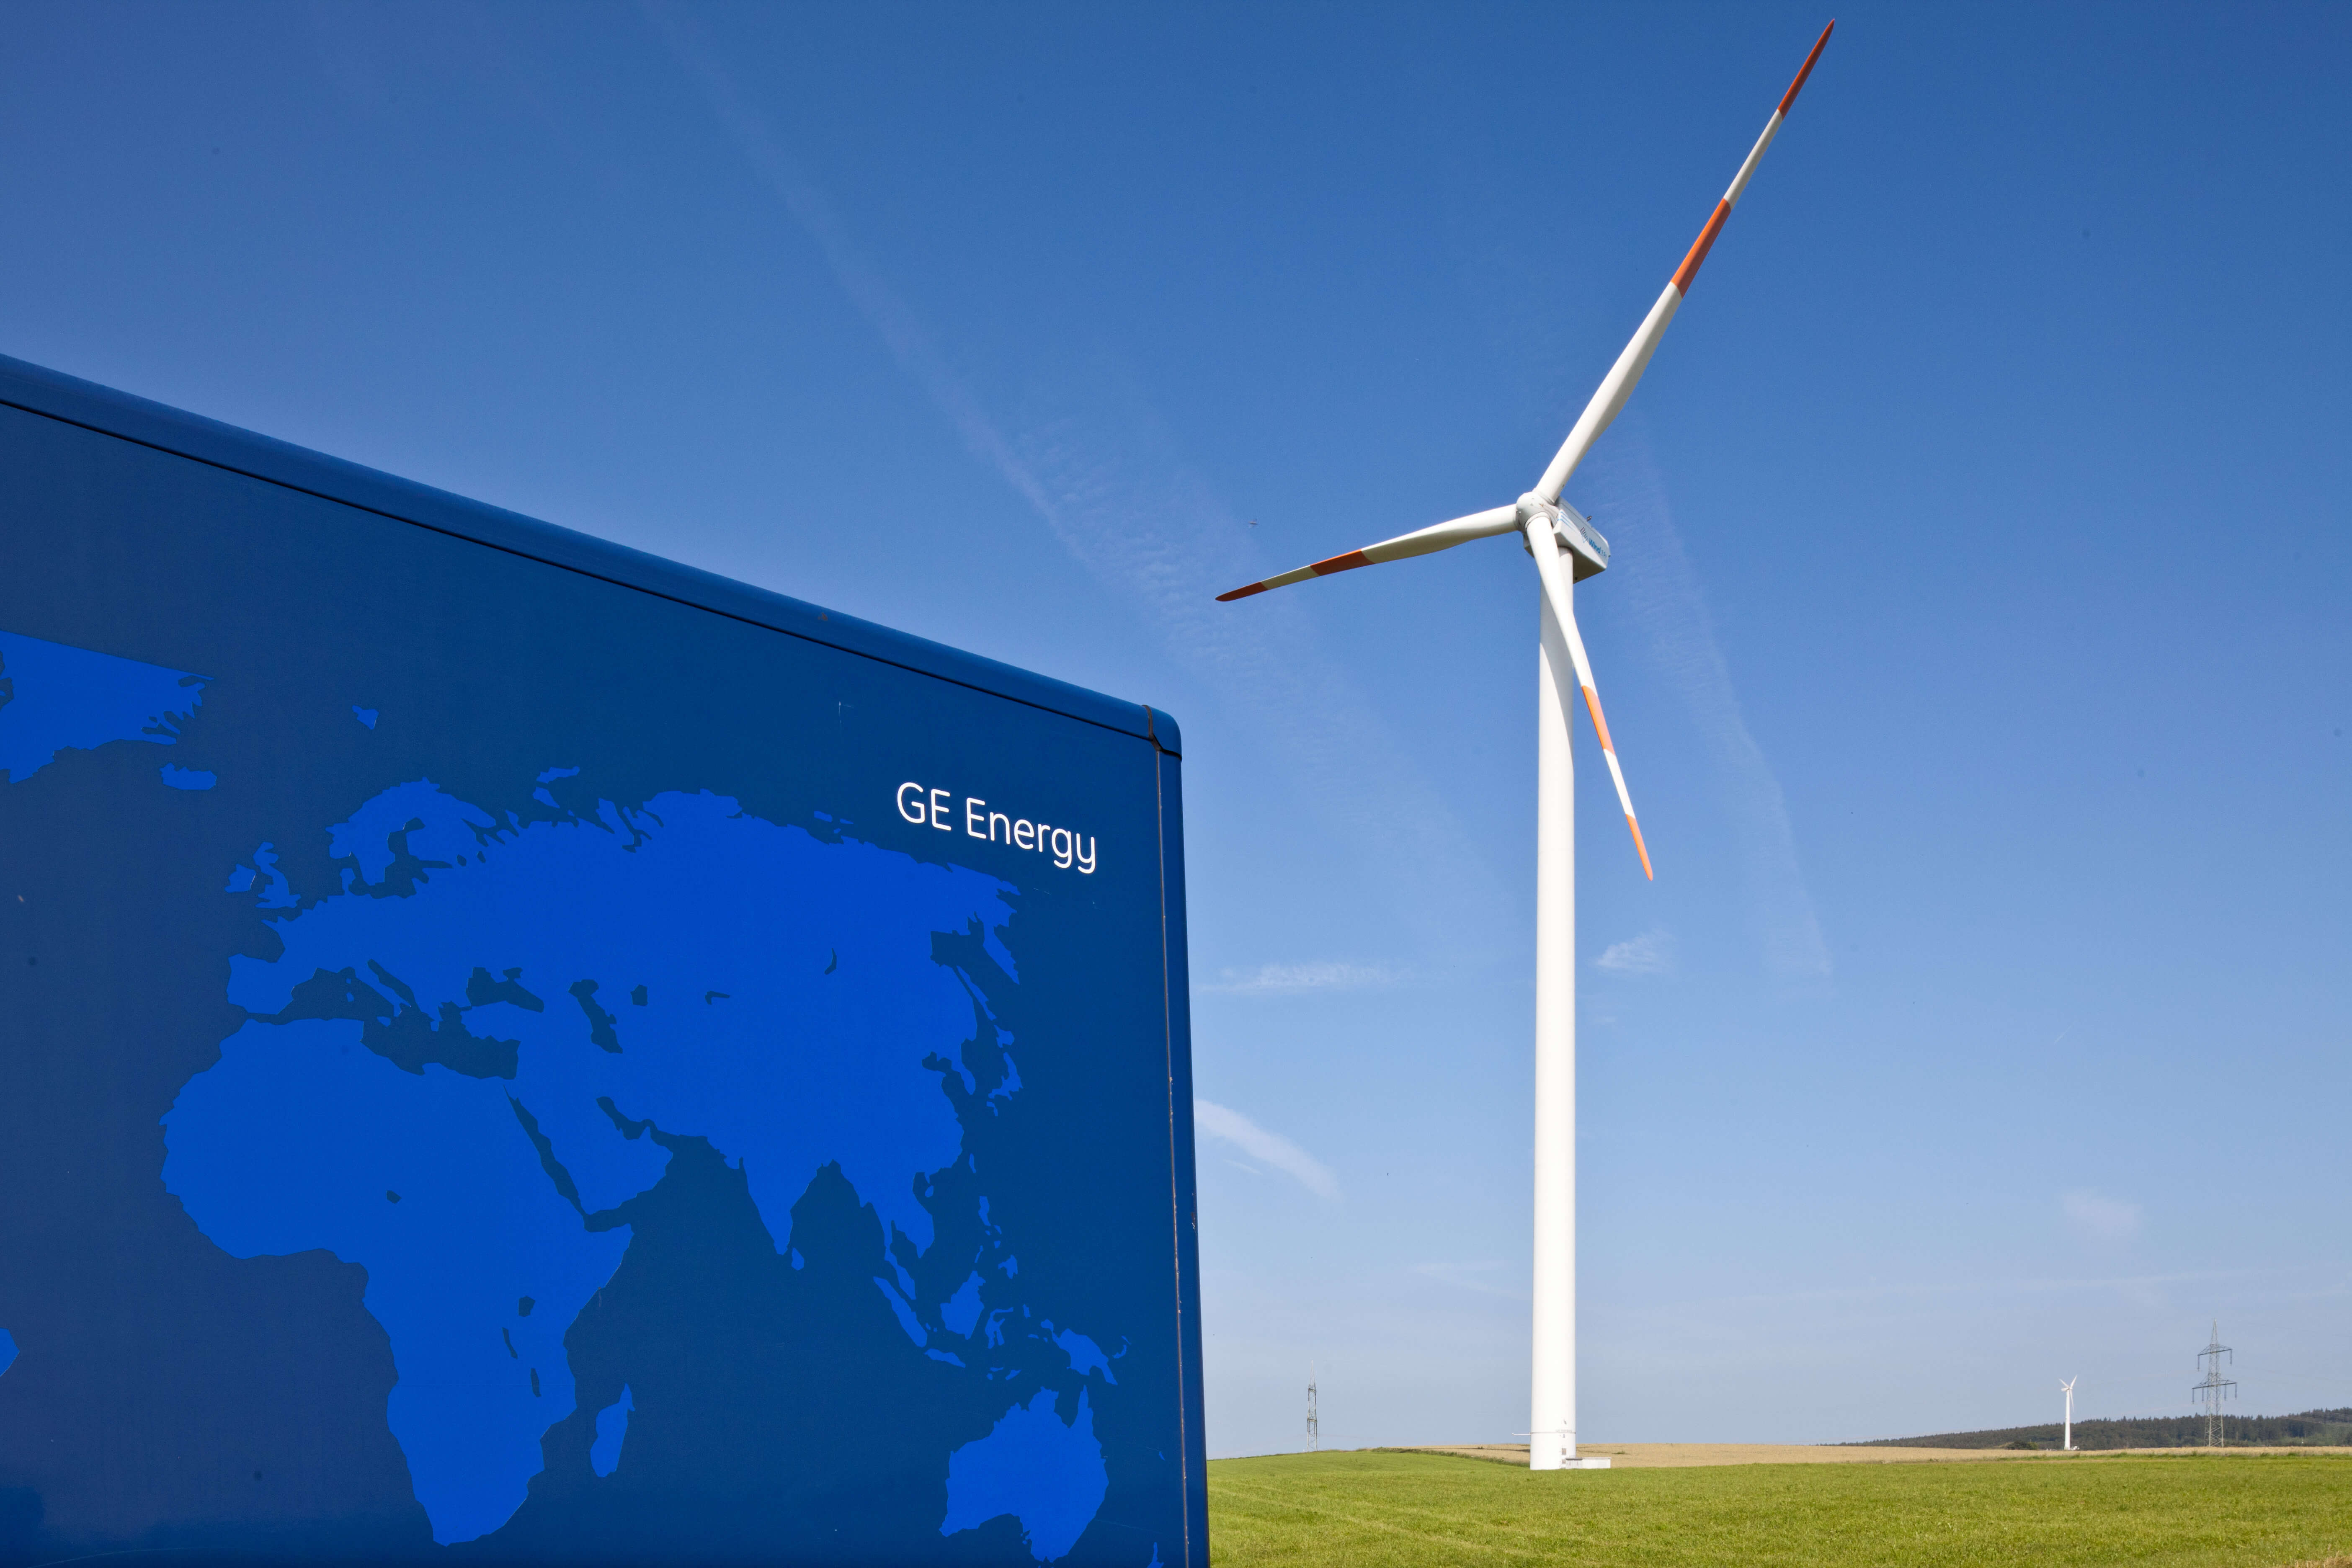 Microsoft and GE team up on wind-powered energy project ...